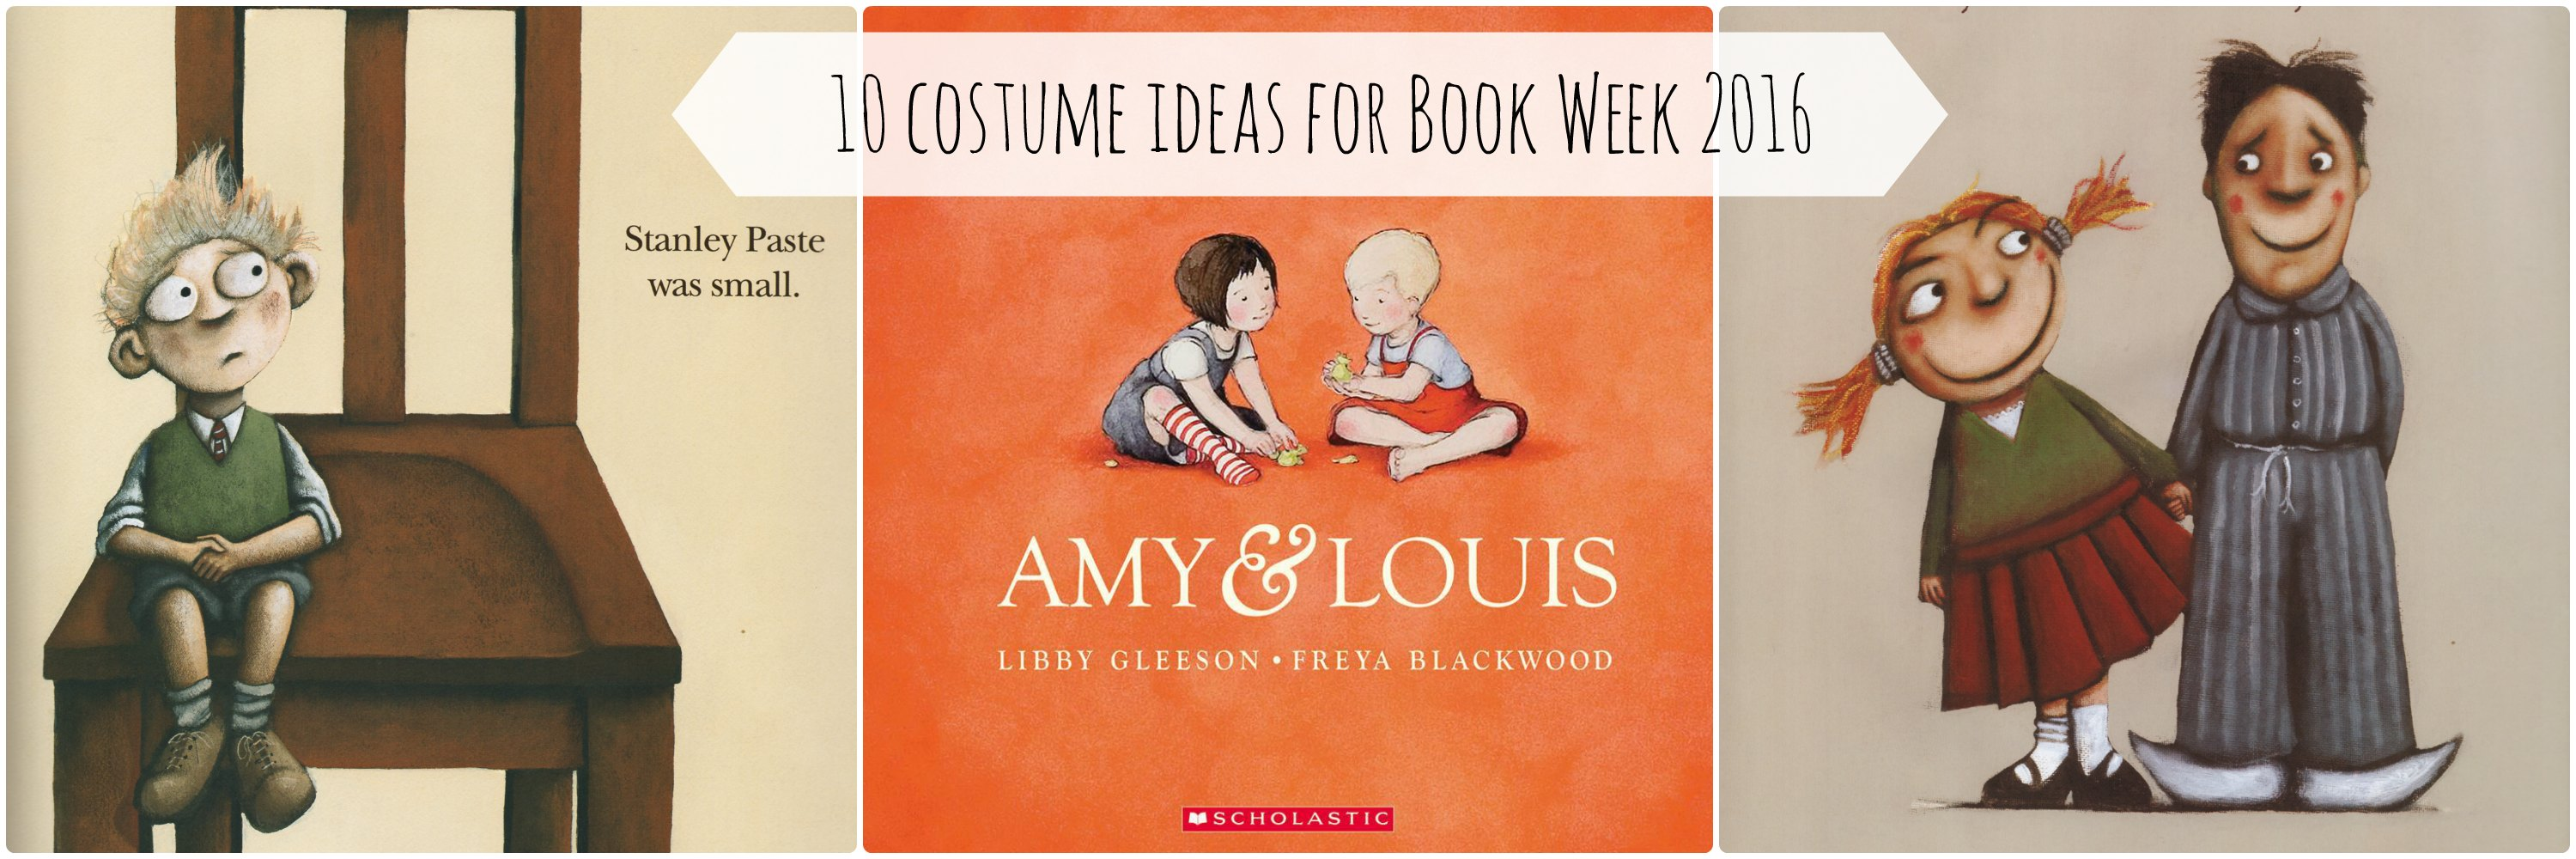 2016 book week costume ideas